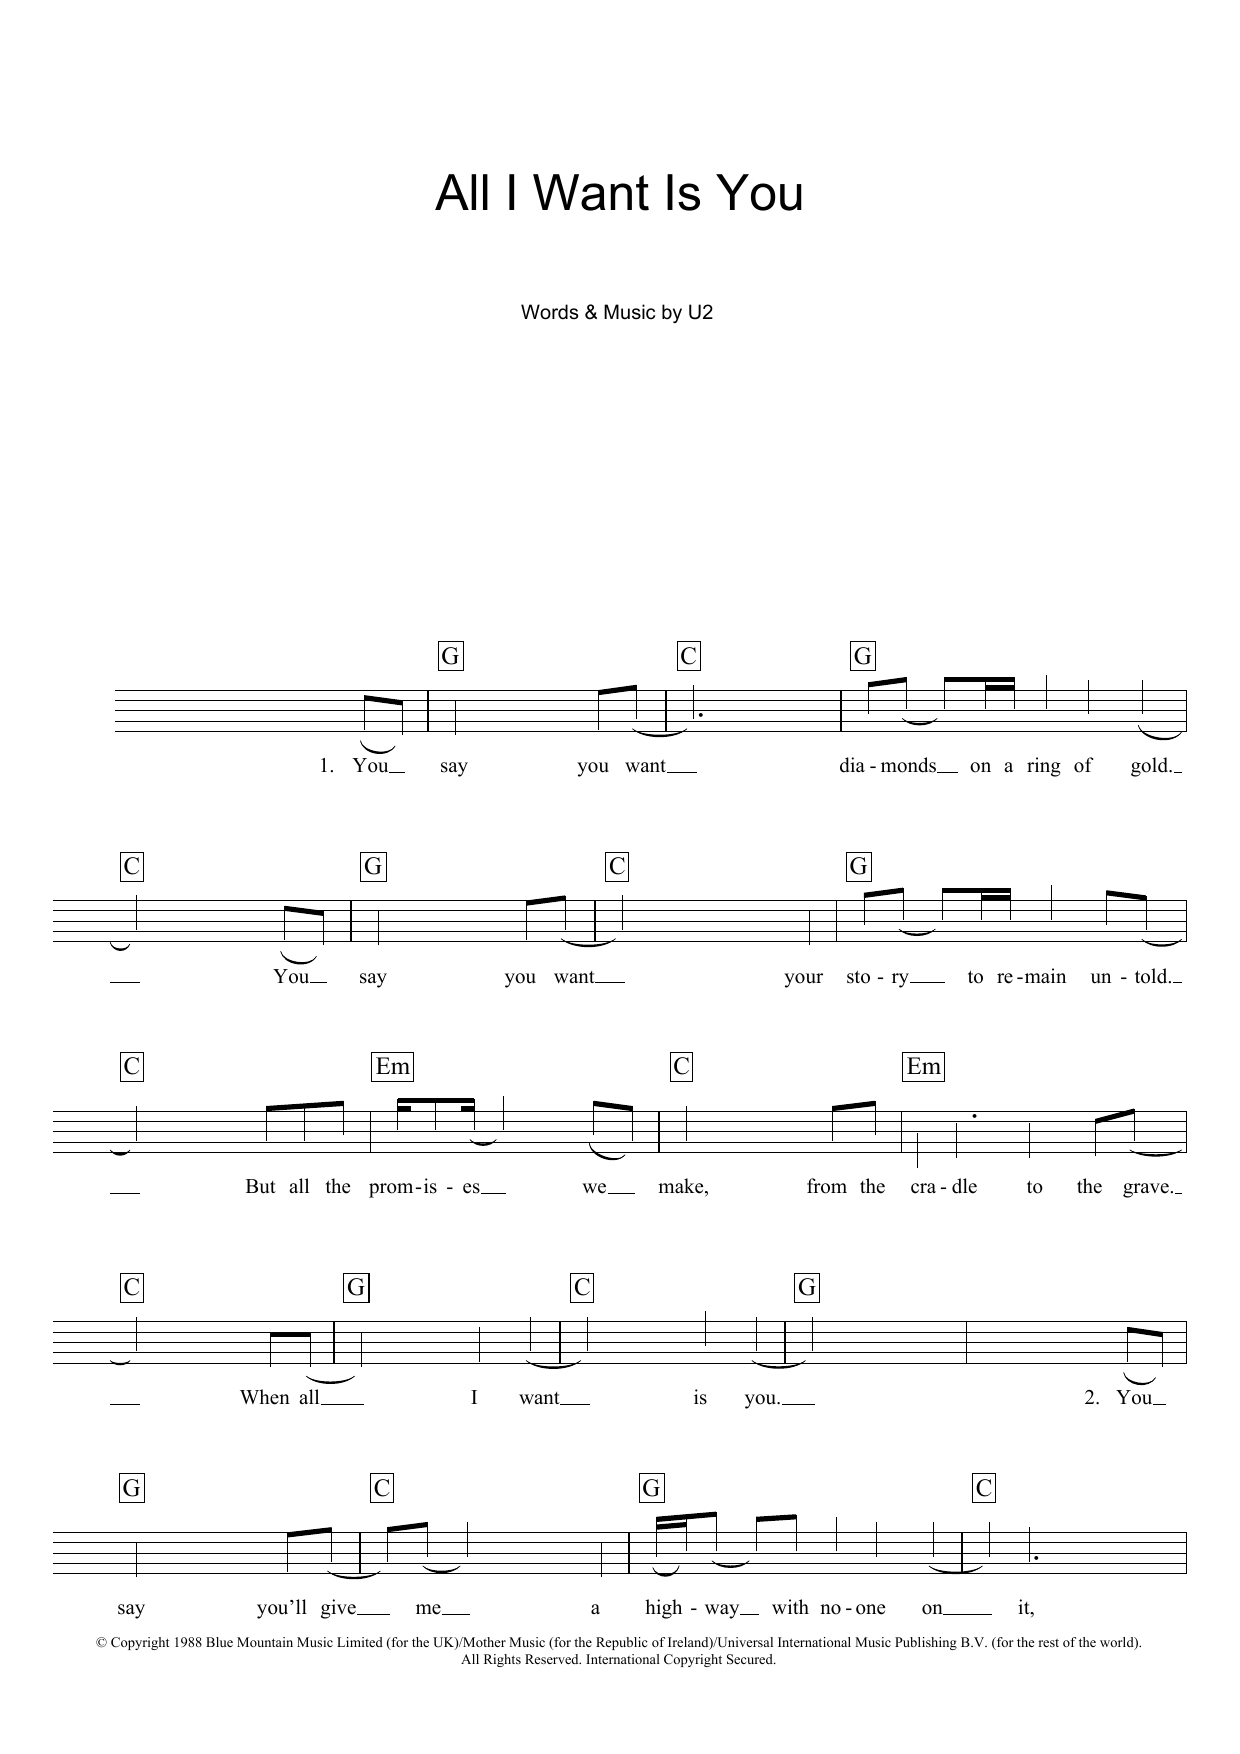 U2 - All I Want Is You at Stanton's Sheet Music